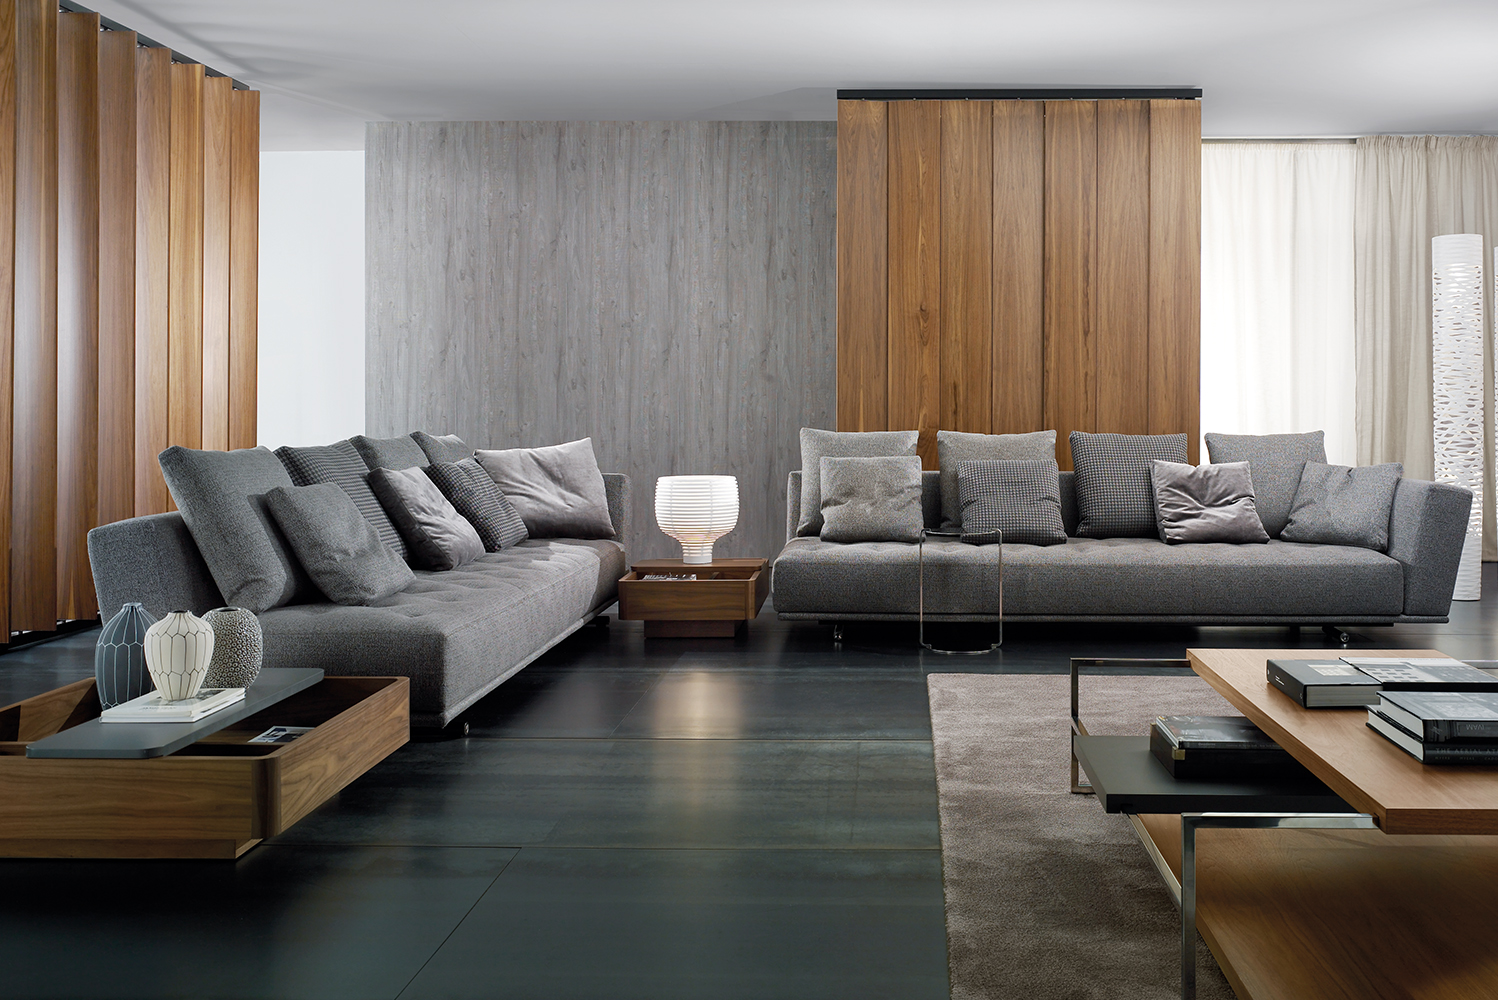 Introducing the Mandalay collection by Casadesús.